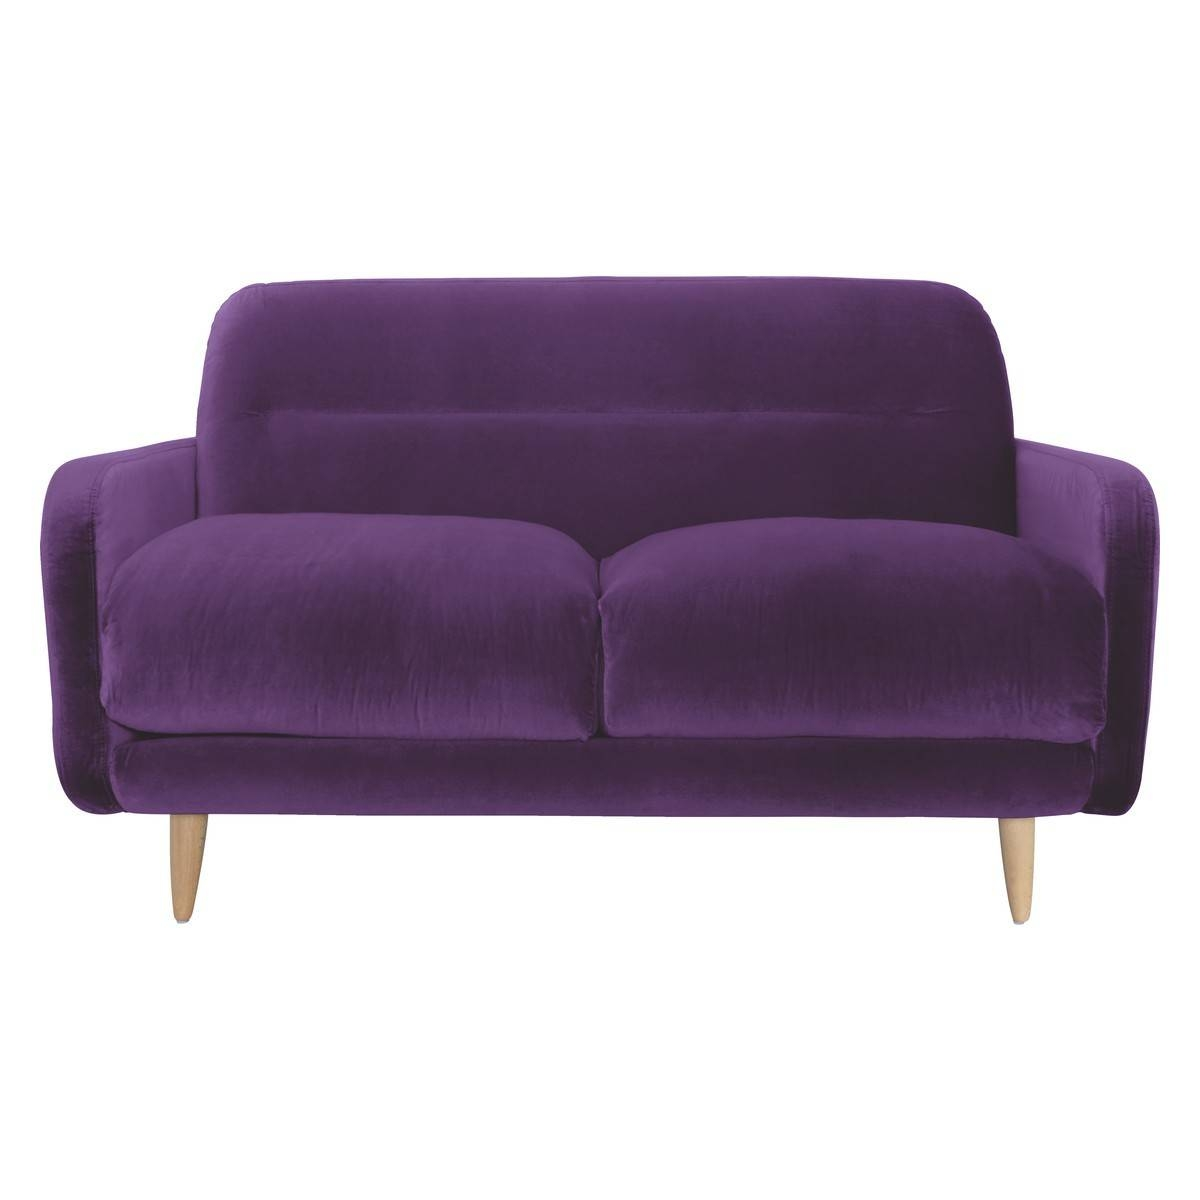 30 best collection of velvet purple sofas. Black Bedroom Furniture Sets. Home Design Ideas